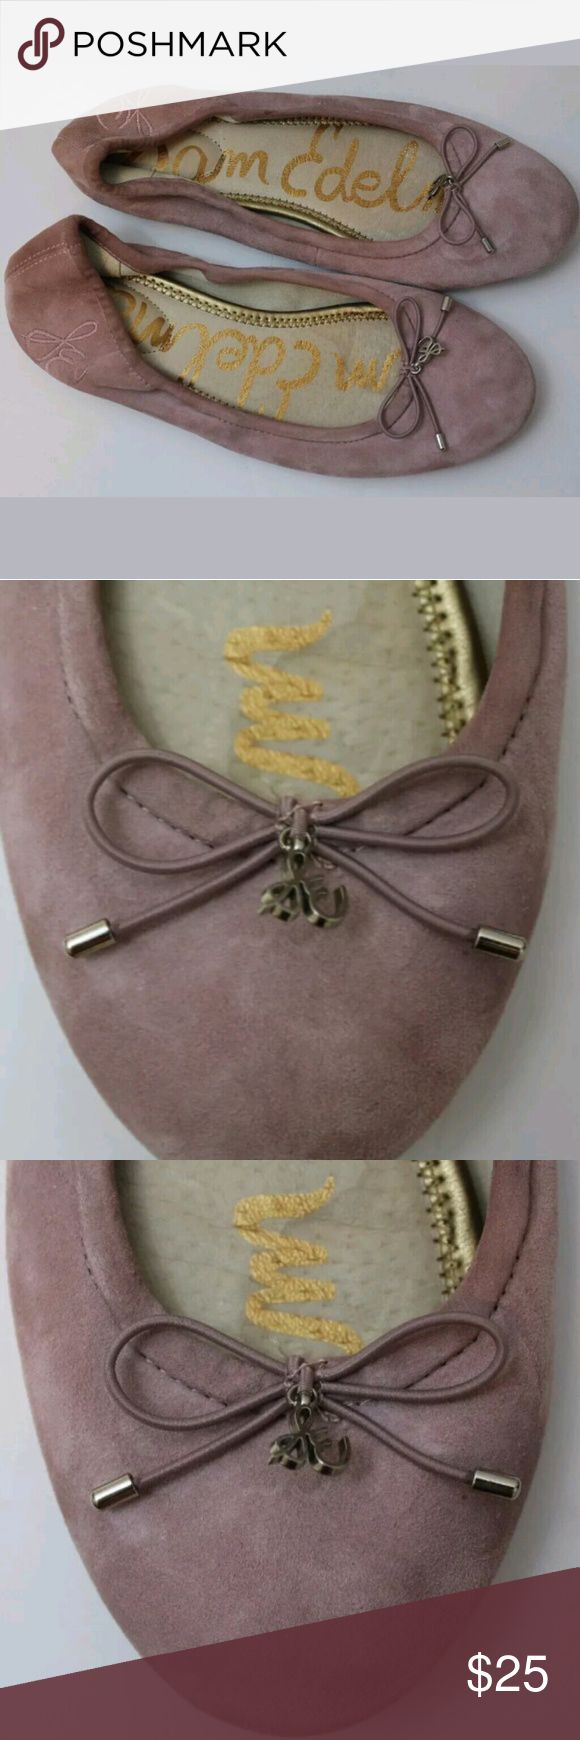 Sam Edelman Size 6 Medium Women's Pink Flats Sam Edelman Size 6 Medium Women's Pink Leather Felicia Ballet Flats. Good pre-owned condition showing some signs of wear. Comes from a smoke free home.   Product Information  Edelman Icon Padded Ballet Flat Special Details: Elastic Top Line, Padded Insole, Bow & Charm Closure: Slip-On Toe: Rounded Toe Materials: Leather, Brahma Hair, Suede, Jacquard or Sequin Insole: Padded Leather Sam Edelman Shoes Flats & Loafers